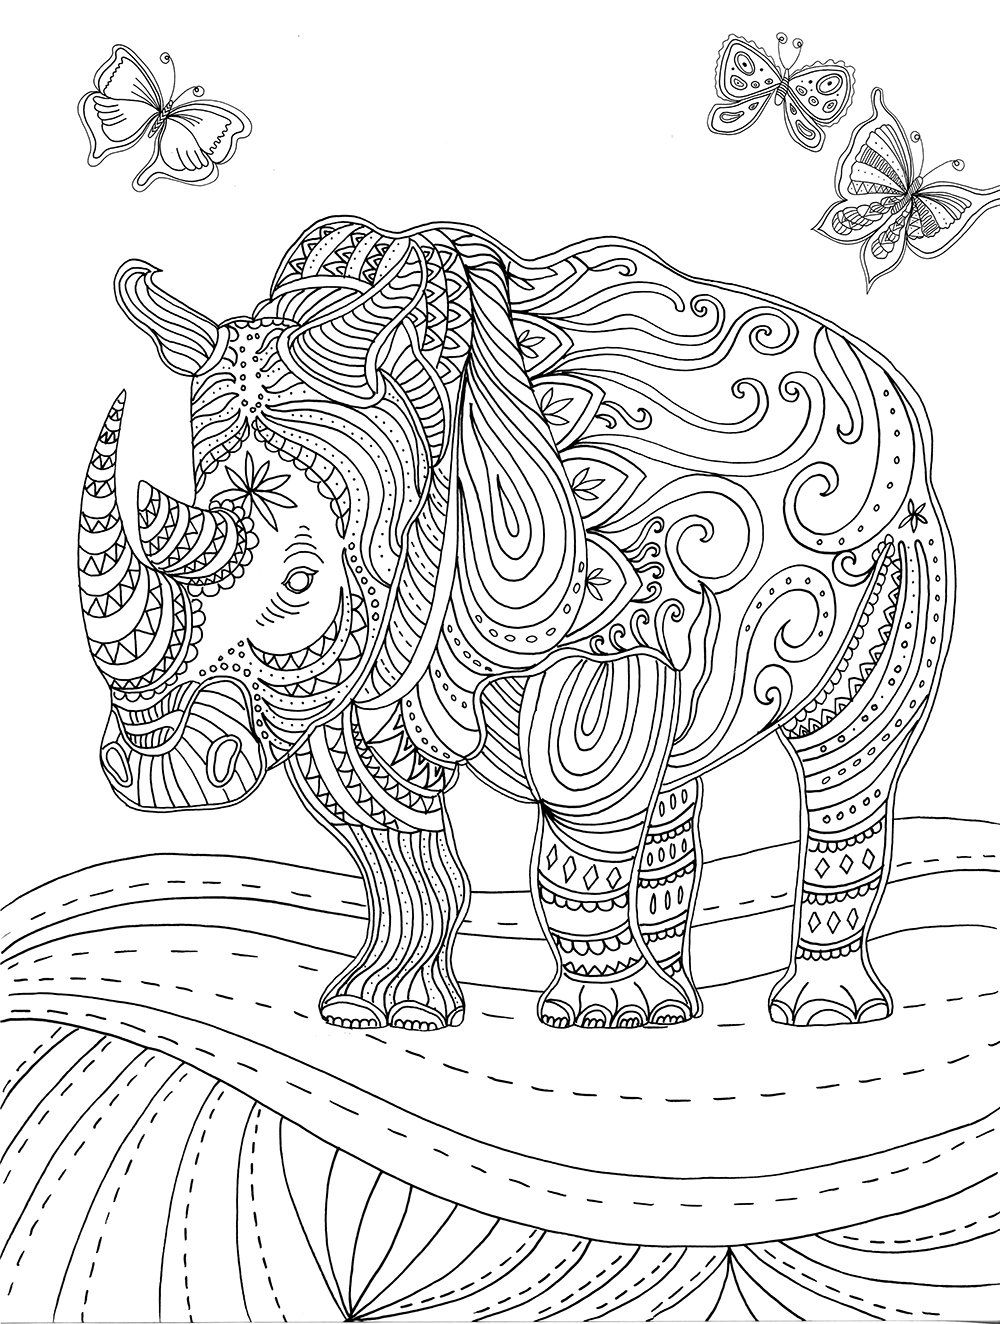 Rhino Colouring Page | Colouring Pages | Pinterest | Rhinos, Adult ...